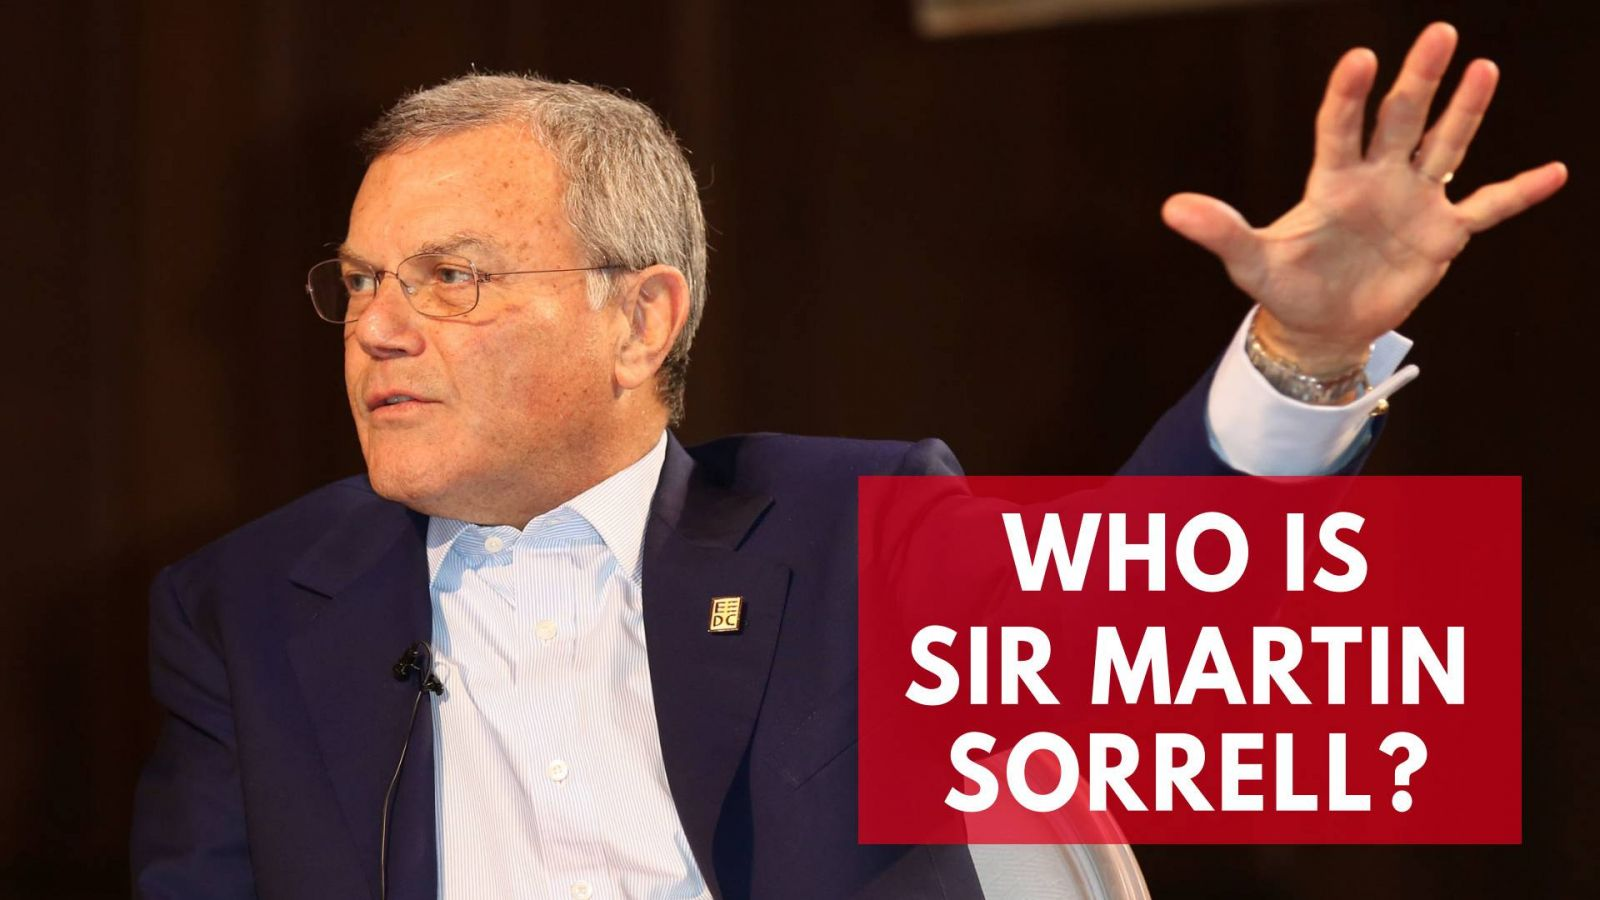 who-is-sir-martin-sorrell